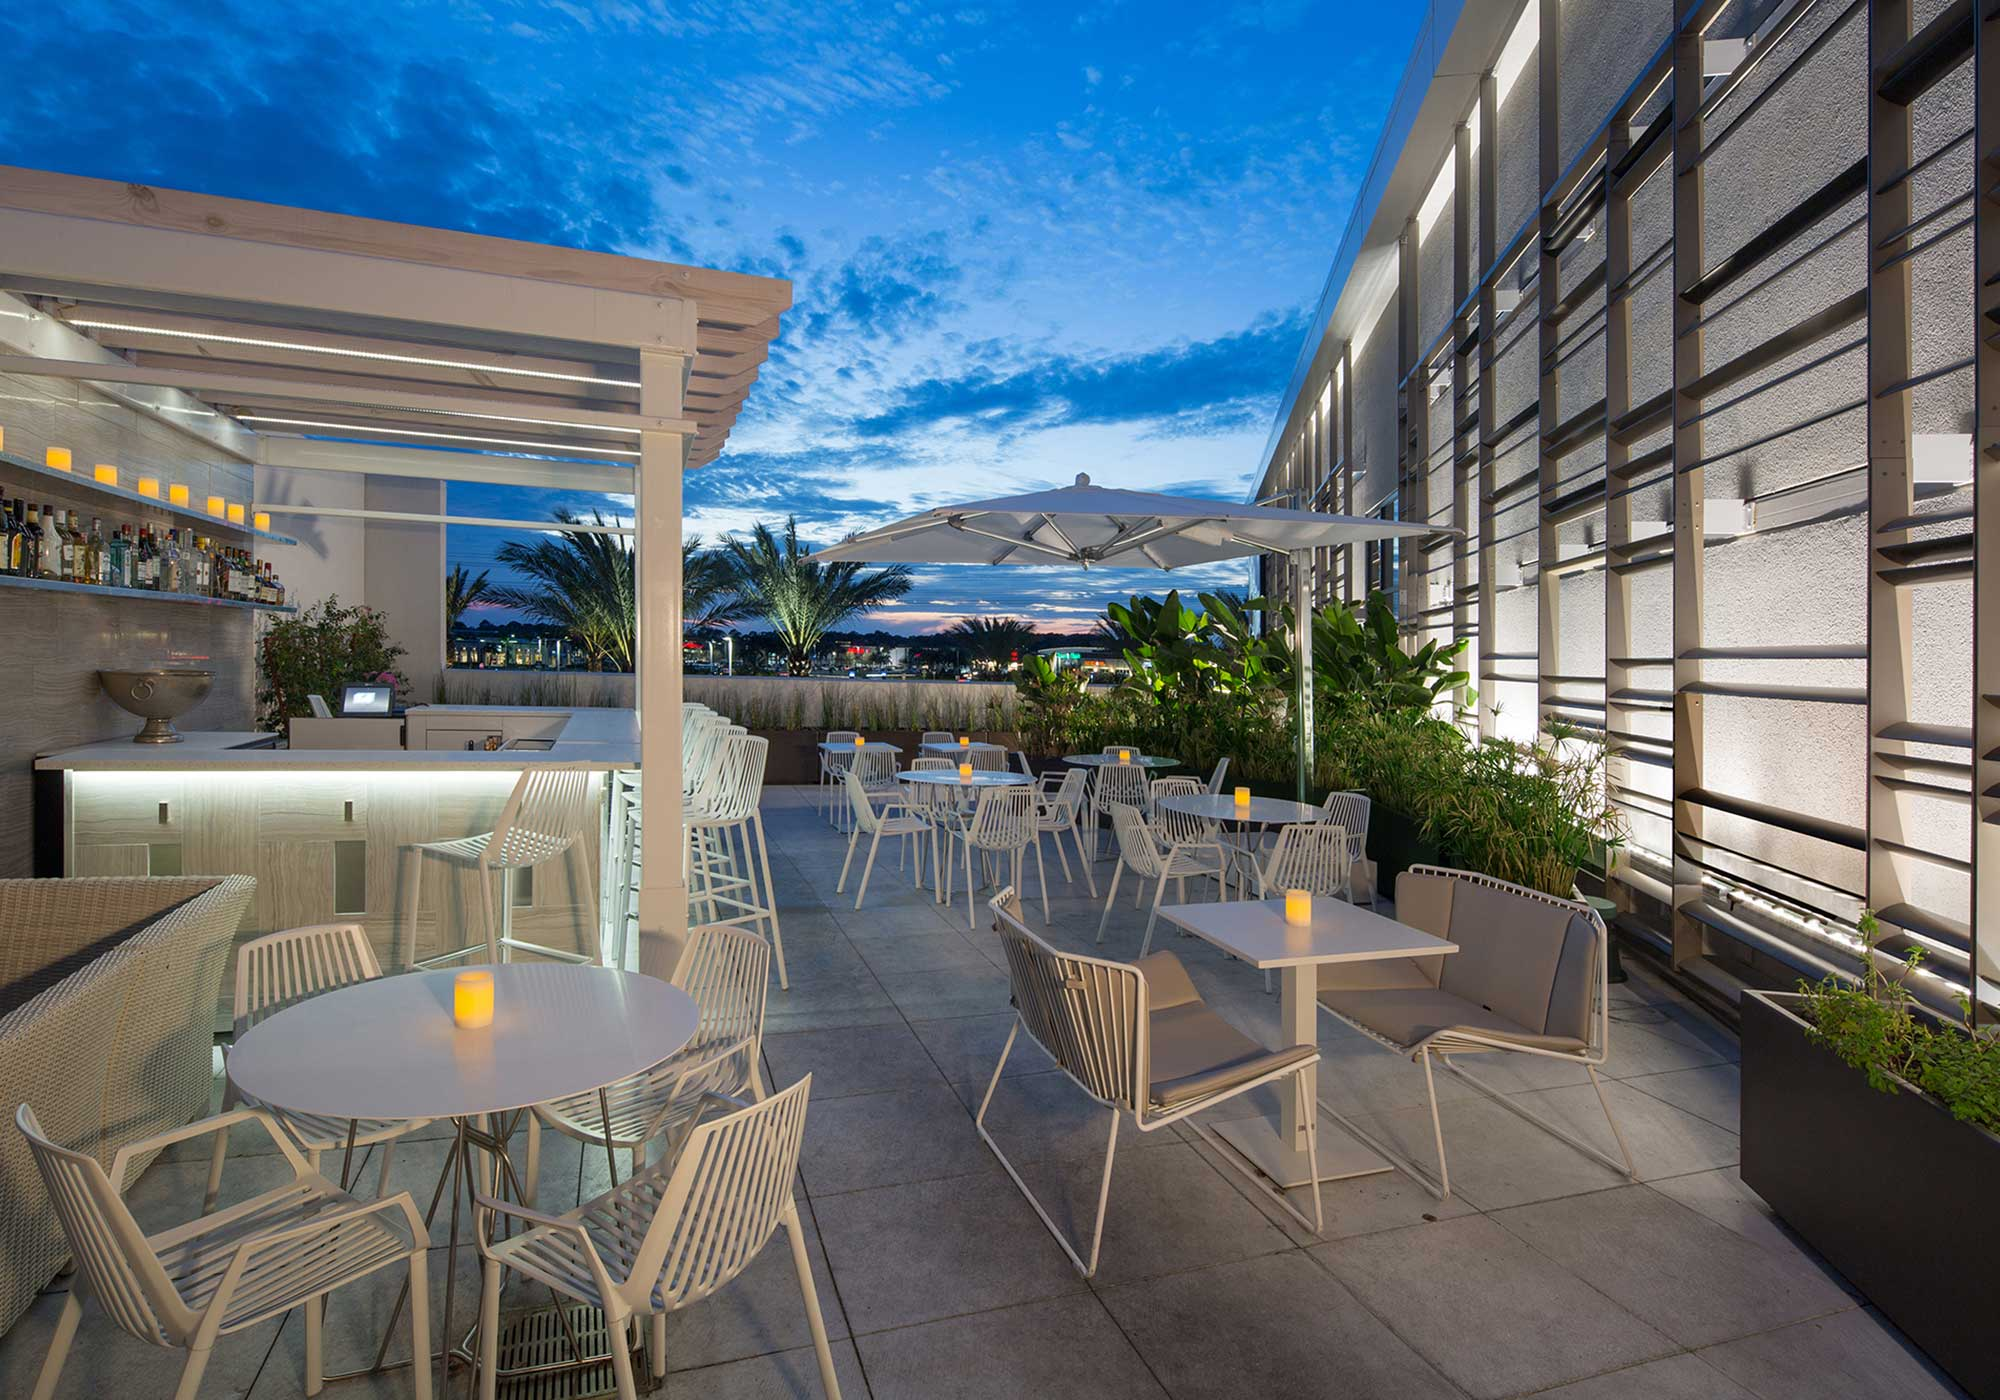 Outdoor dining as the sun sets